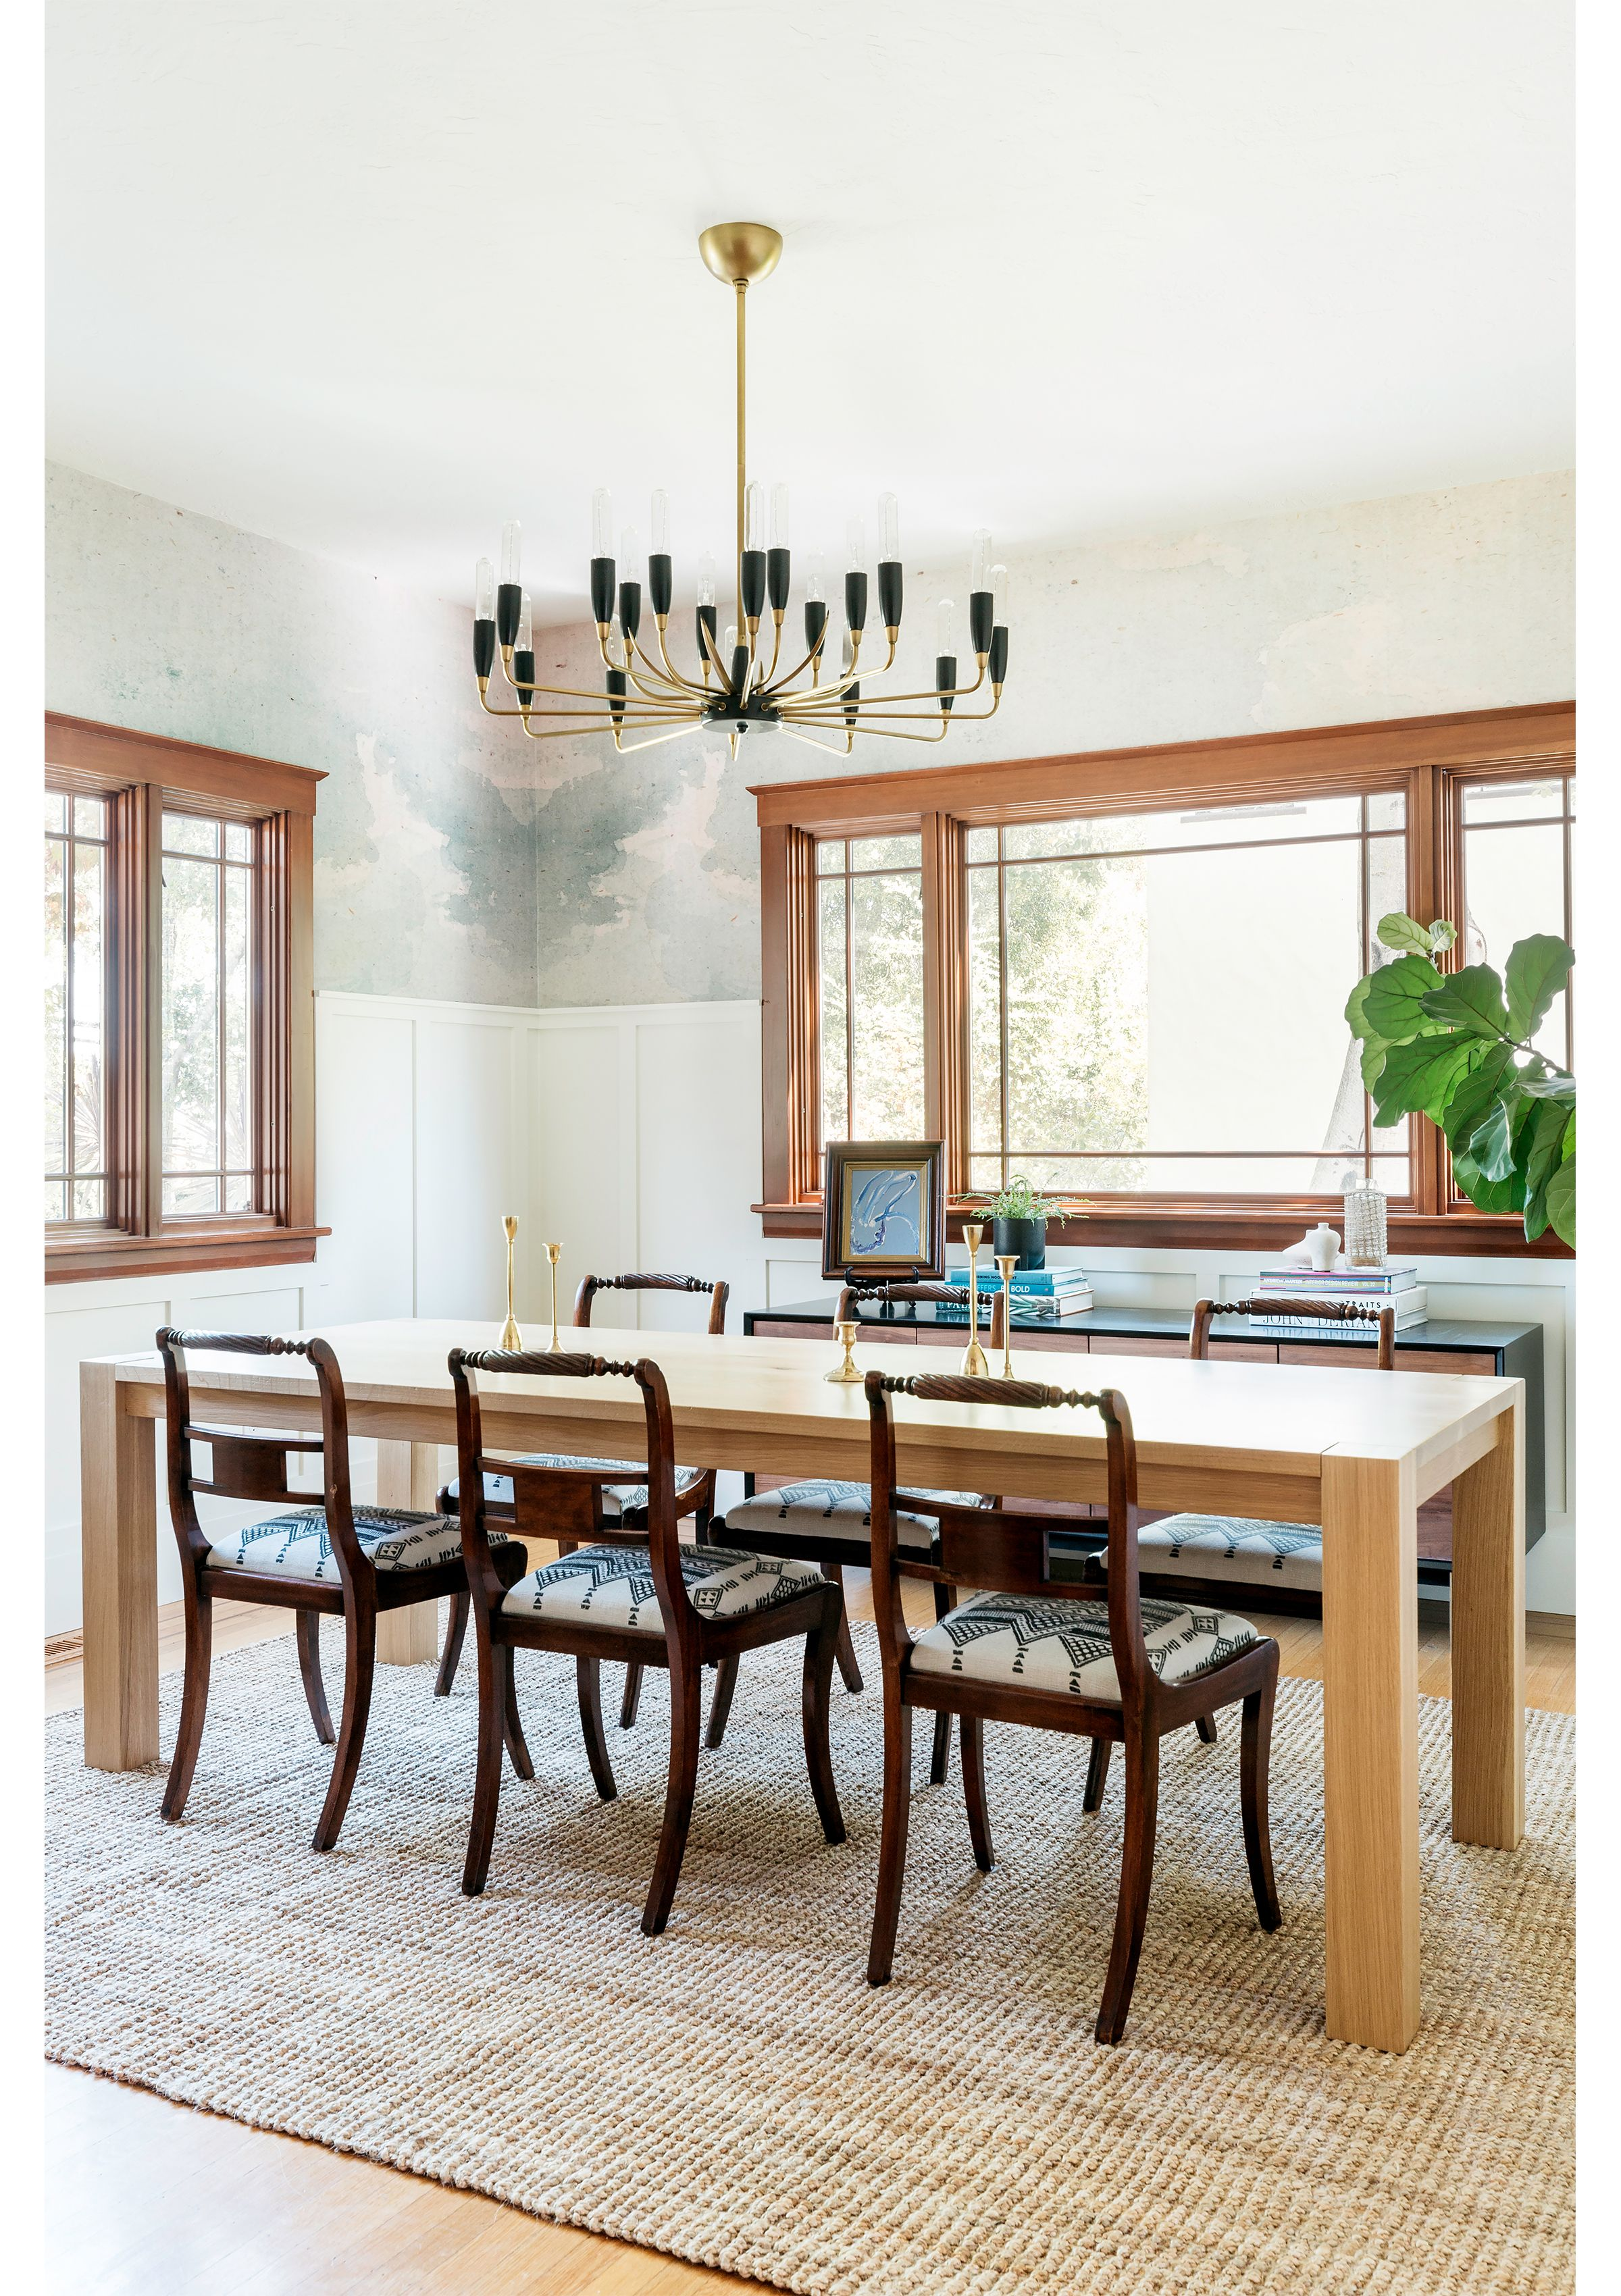 Modern Traditional Dining Room Modern Chandelier Wallpaper Millwork Wainscoting Dining Room Chandelier Modern Modern Traditional Dining Room Interior